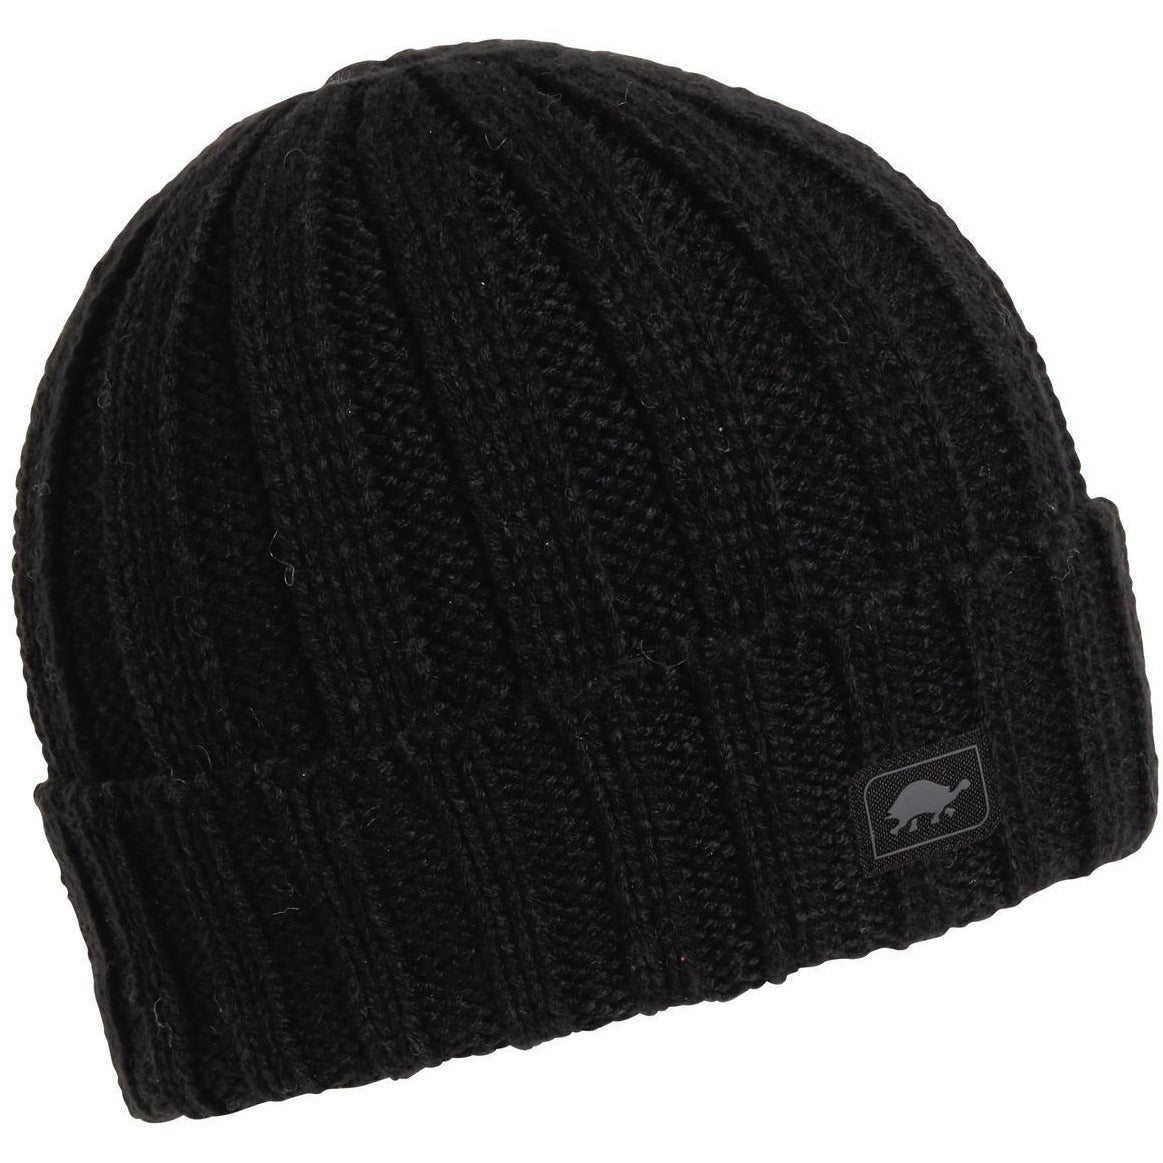 Turtle Fur Biggie Cuffed Beanie - 88 Gear